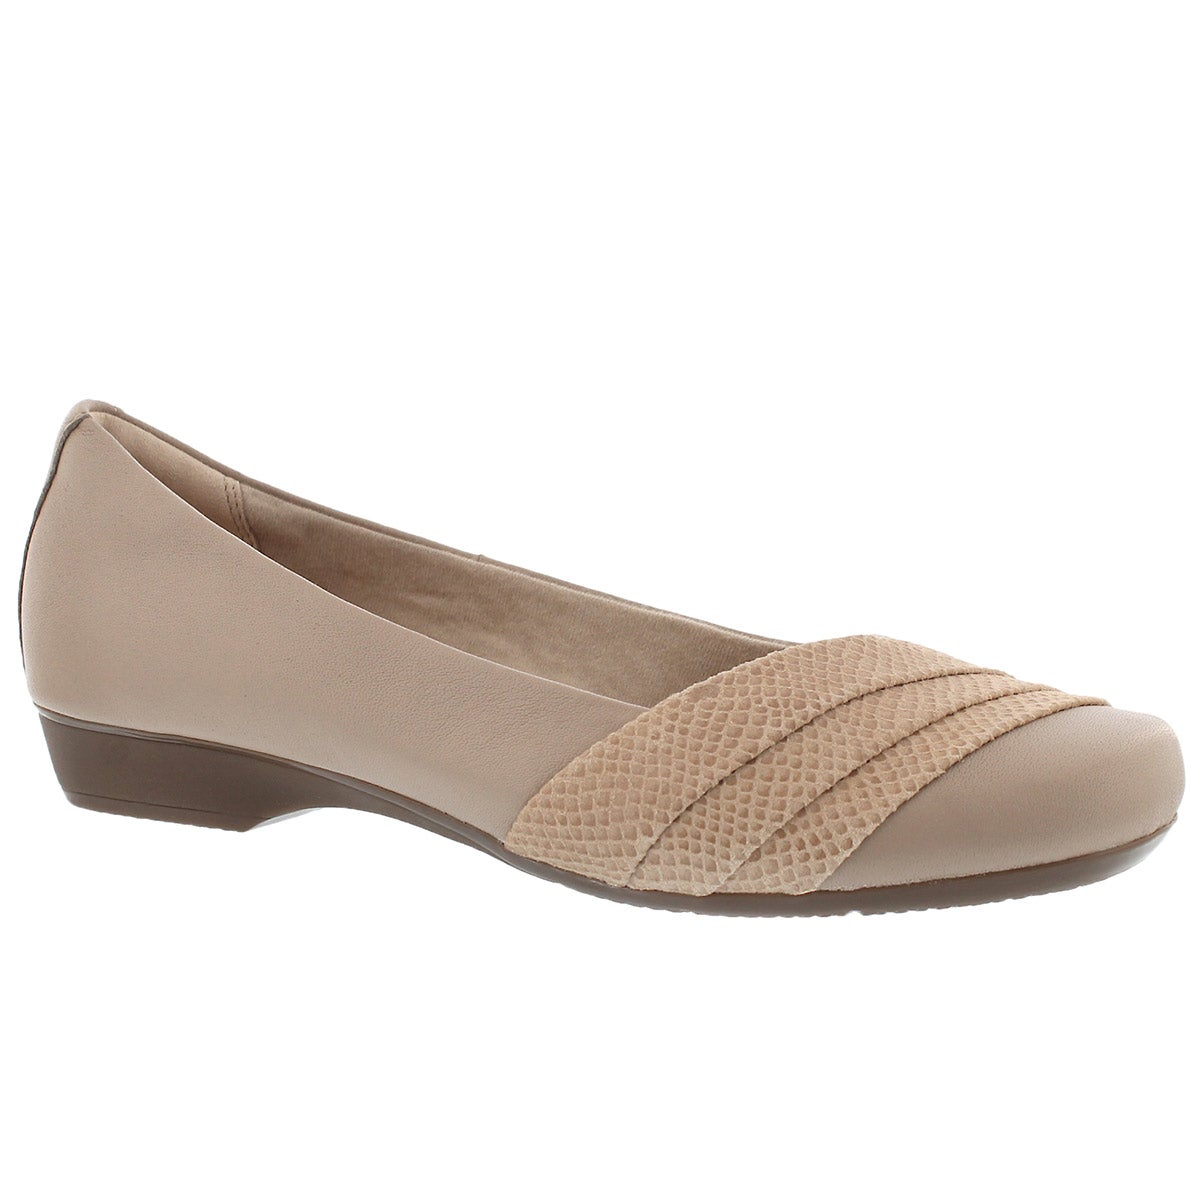 Women's BLANCHE CACEE sand flats